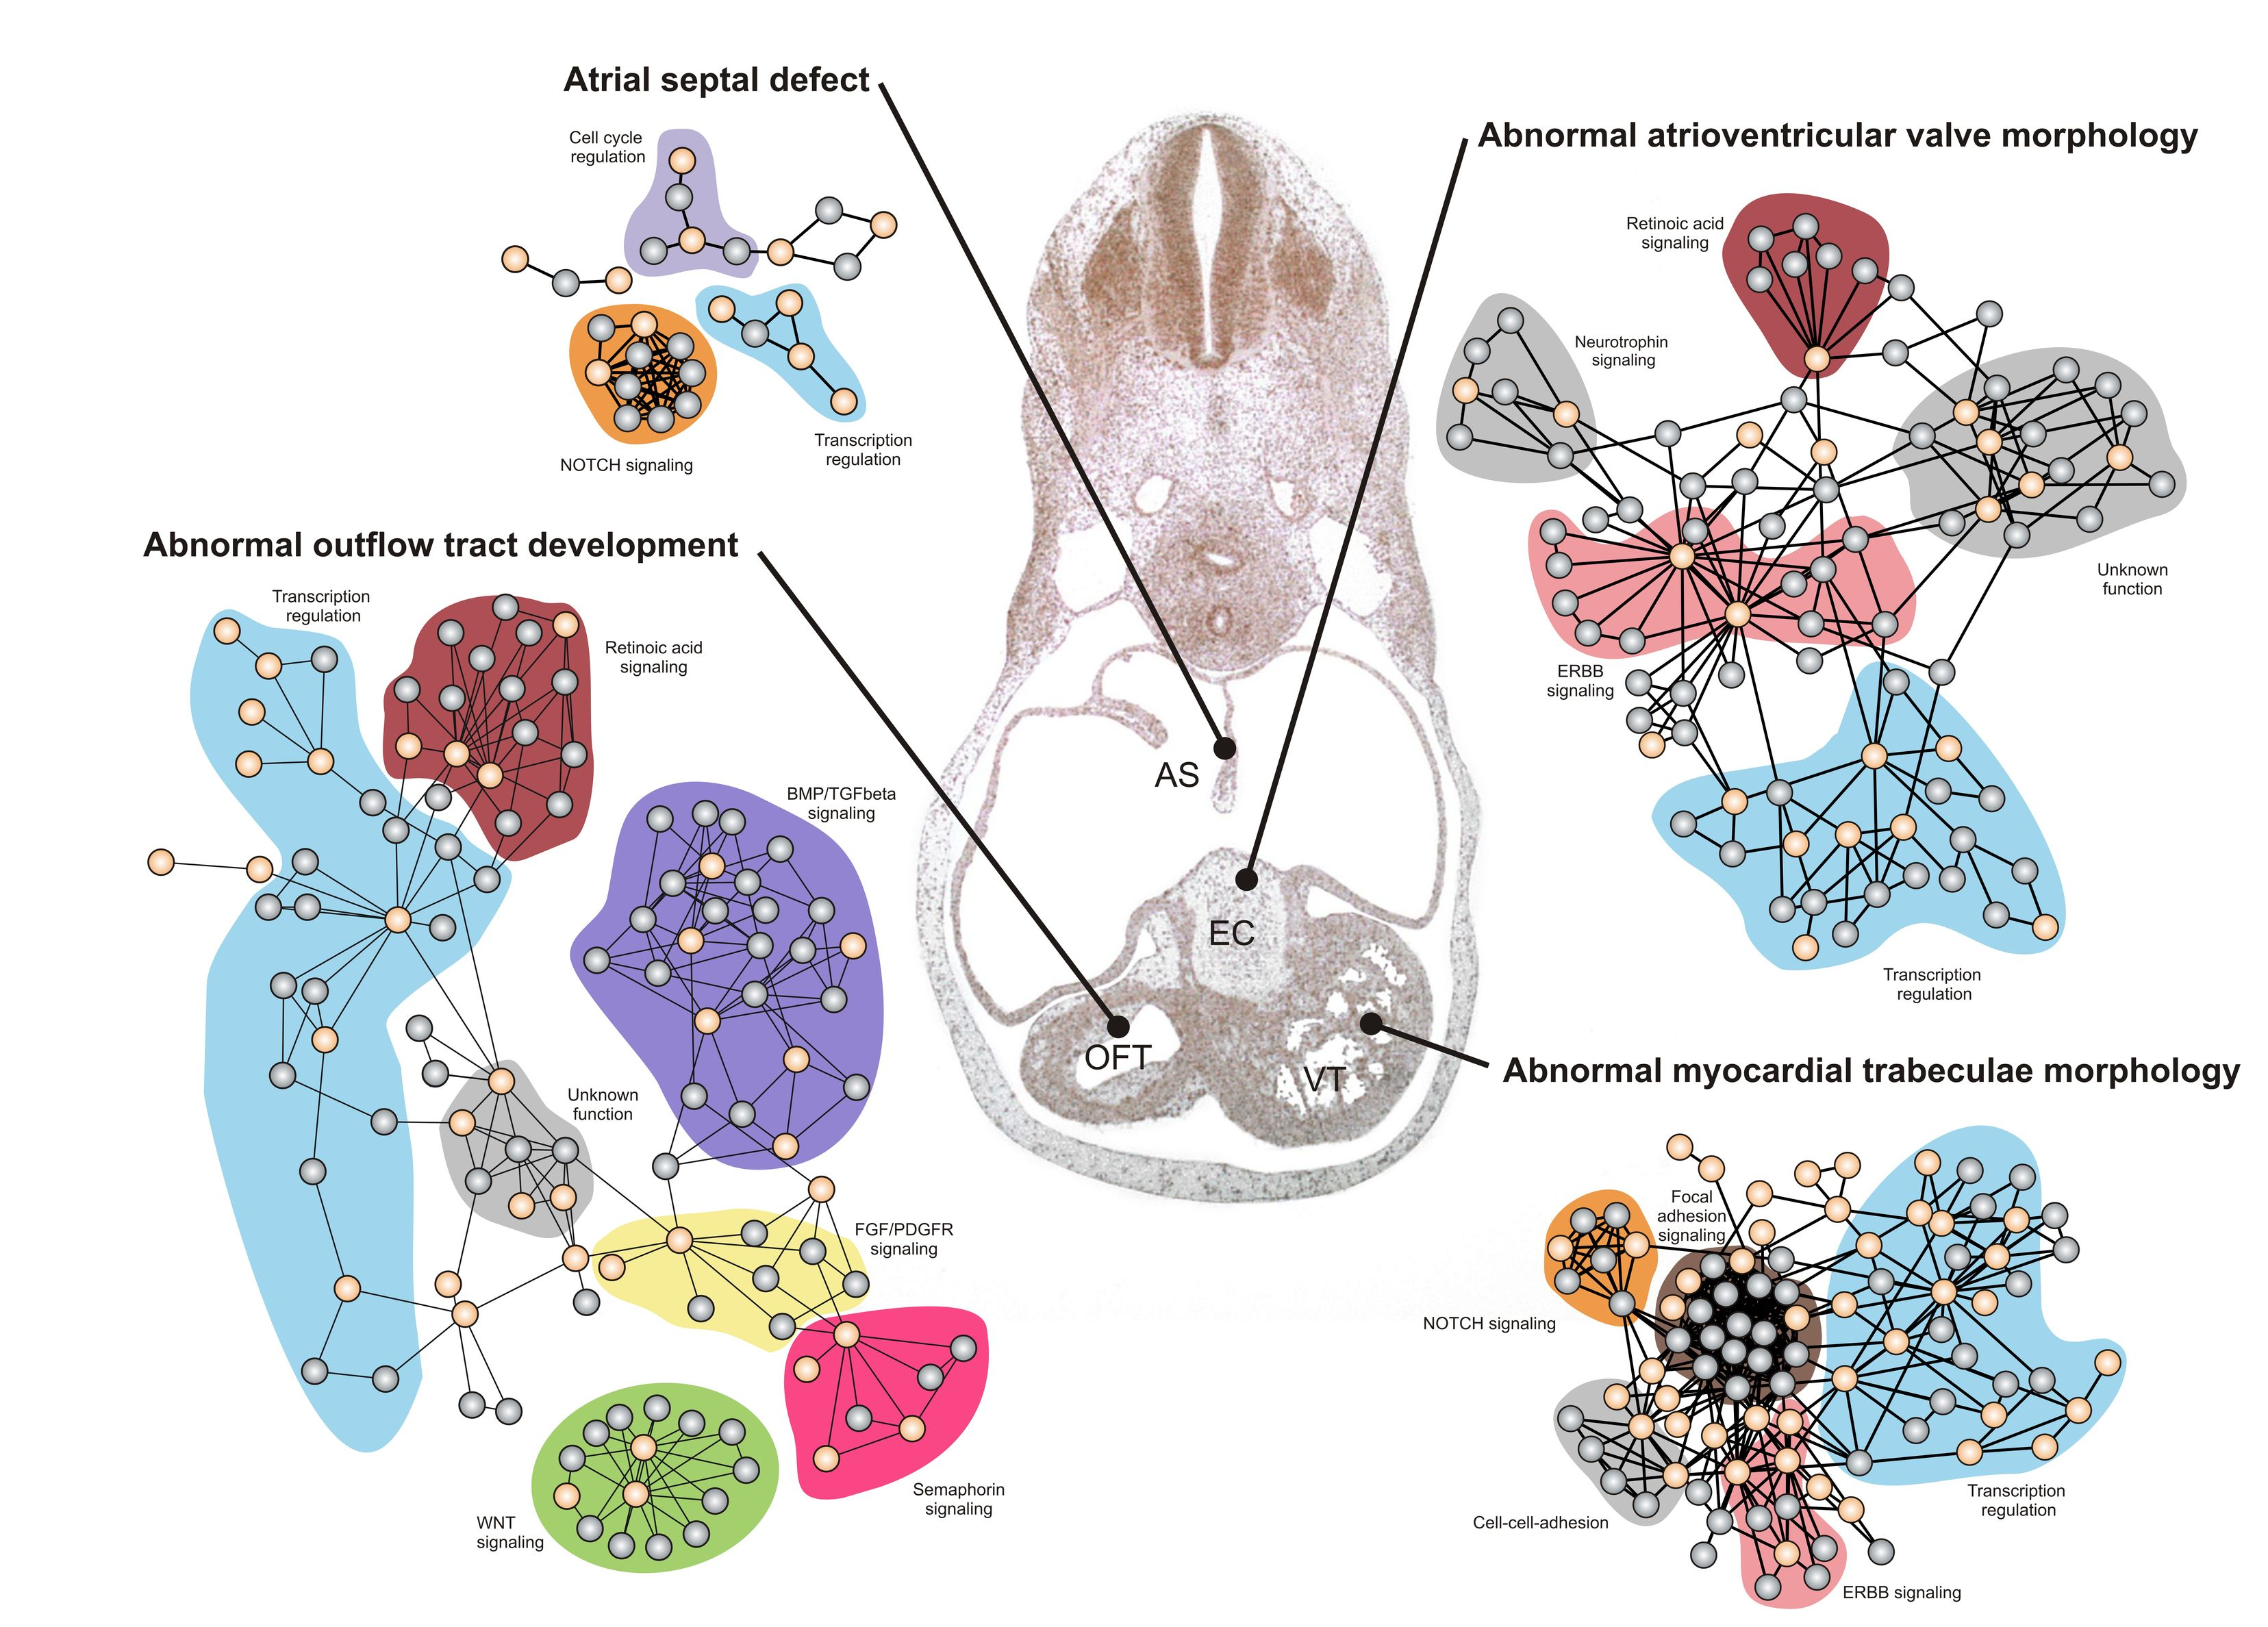 Figure of Developmental networks involved in development of specific cardiac structures